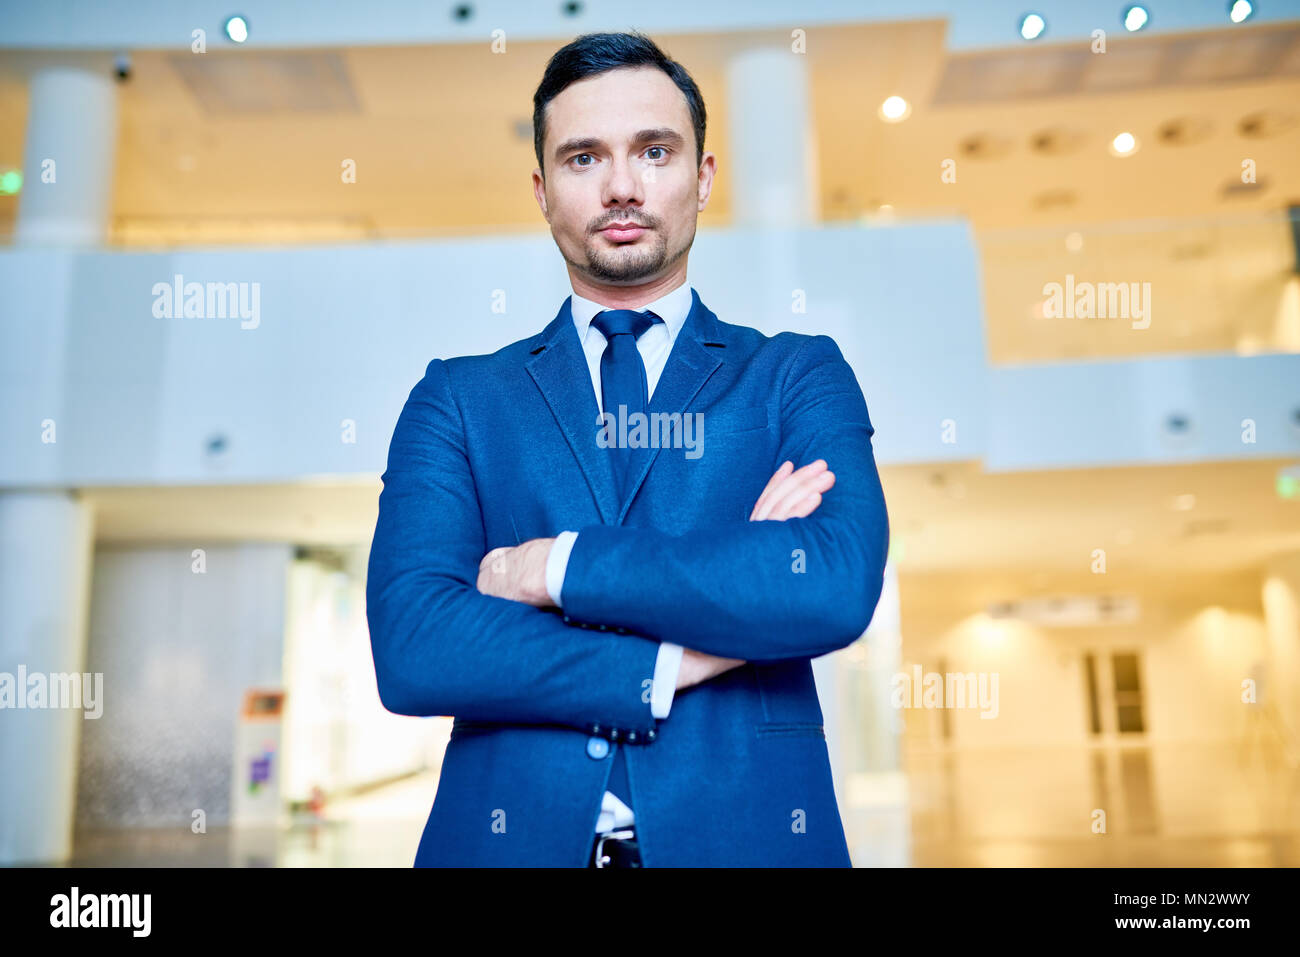 Waist up portrait of successful young businessman wearing blue suit posing confidently and looking at camera while standing with arms crossed in moder Stock Photo